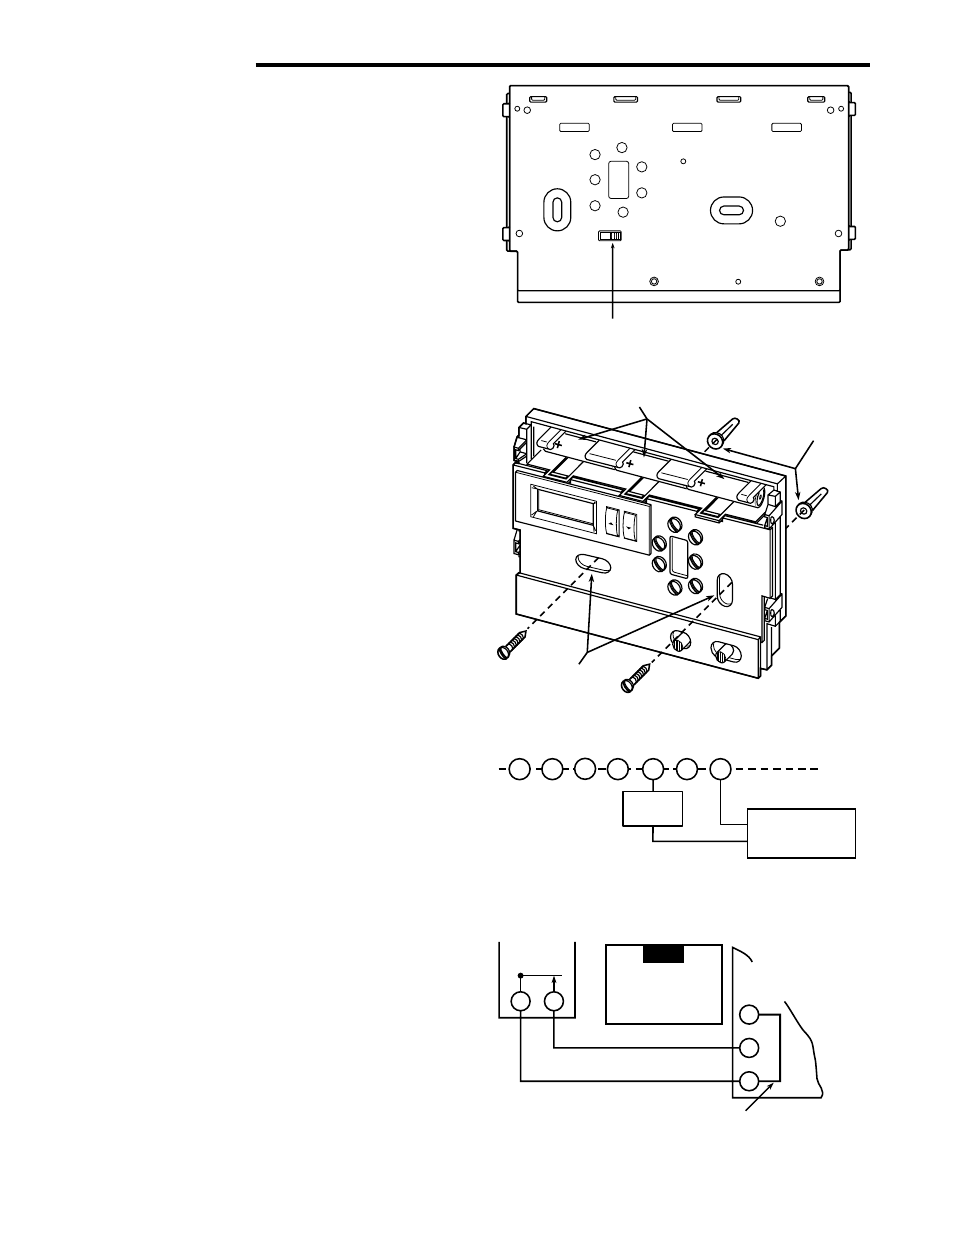 Installation Remove Old Thermostat Attach Base To Wall 2wire Wiring Diagram White Rodgers 1f86 444 User Manual Page 2 4